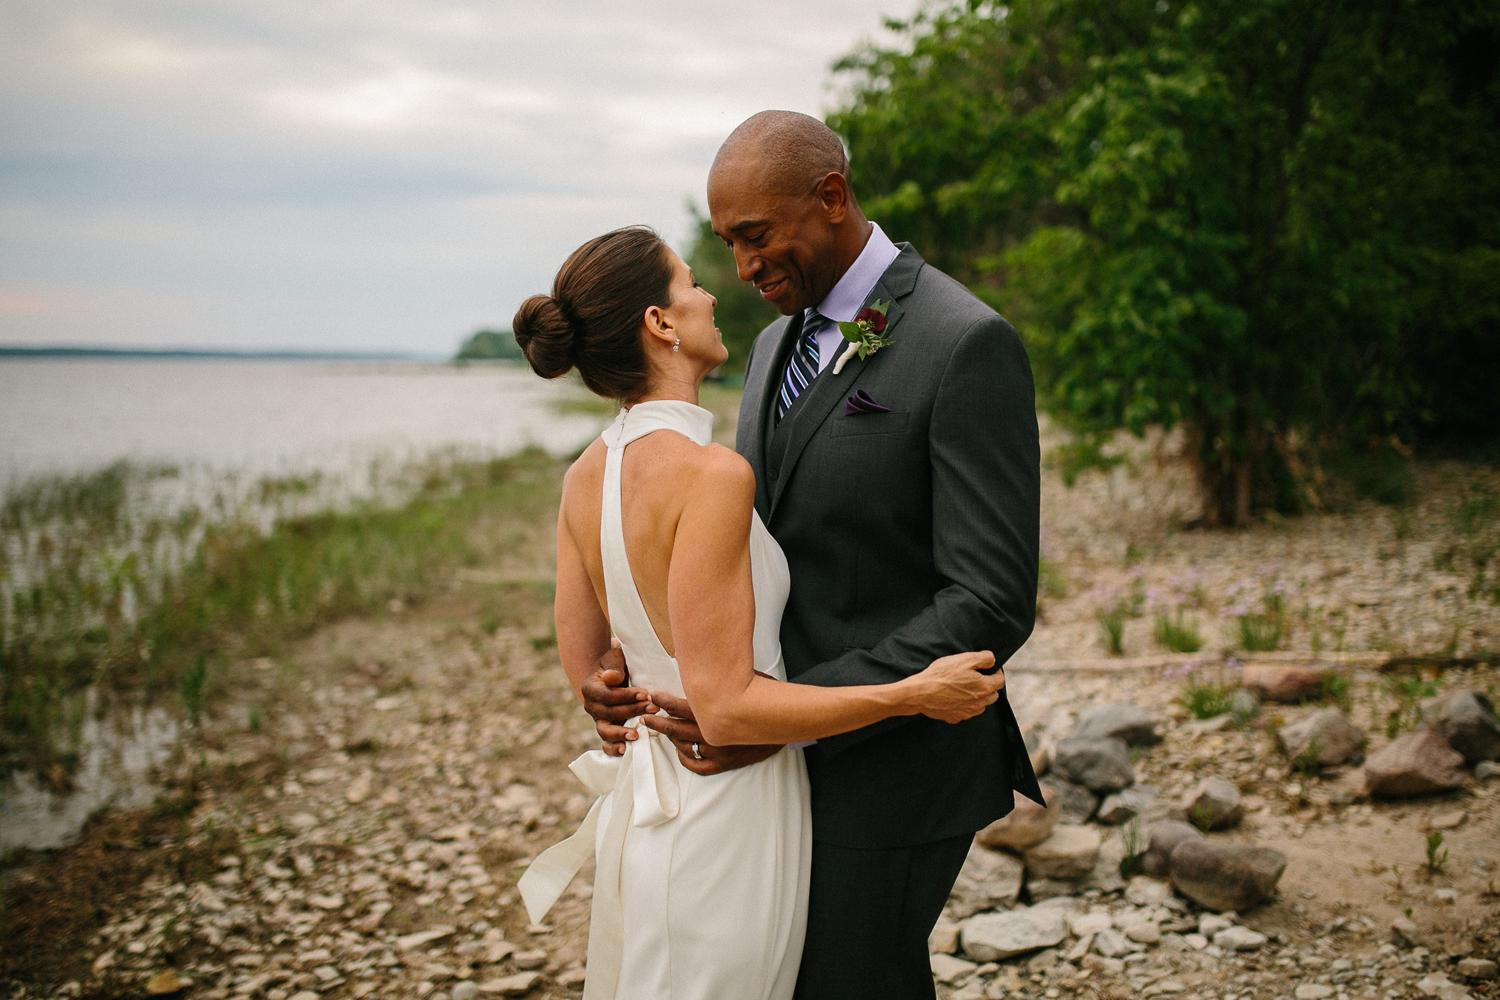 ottawa river small intimate wedding-144.jpg